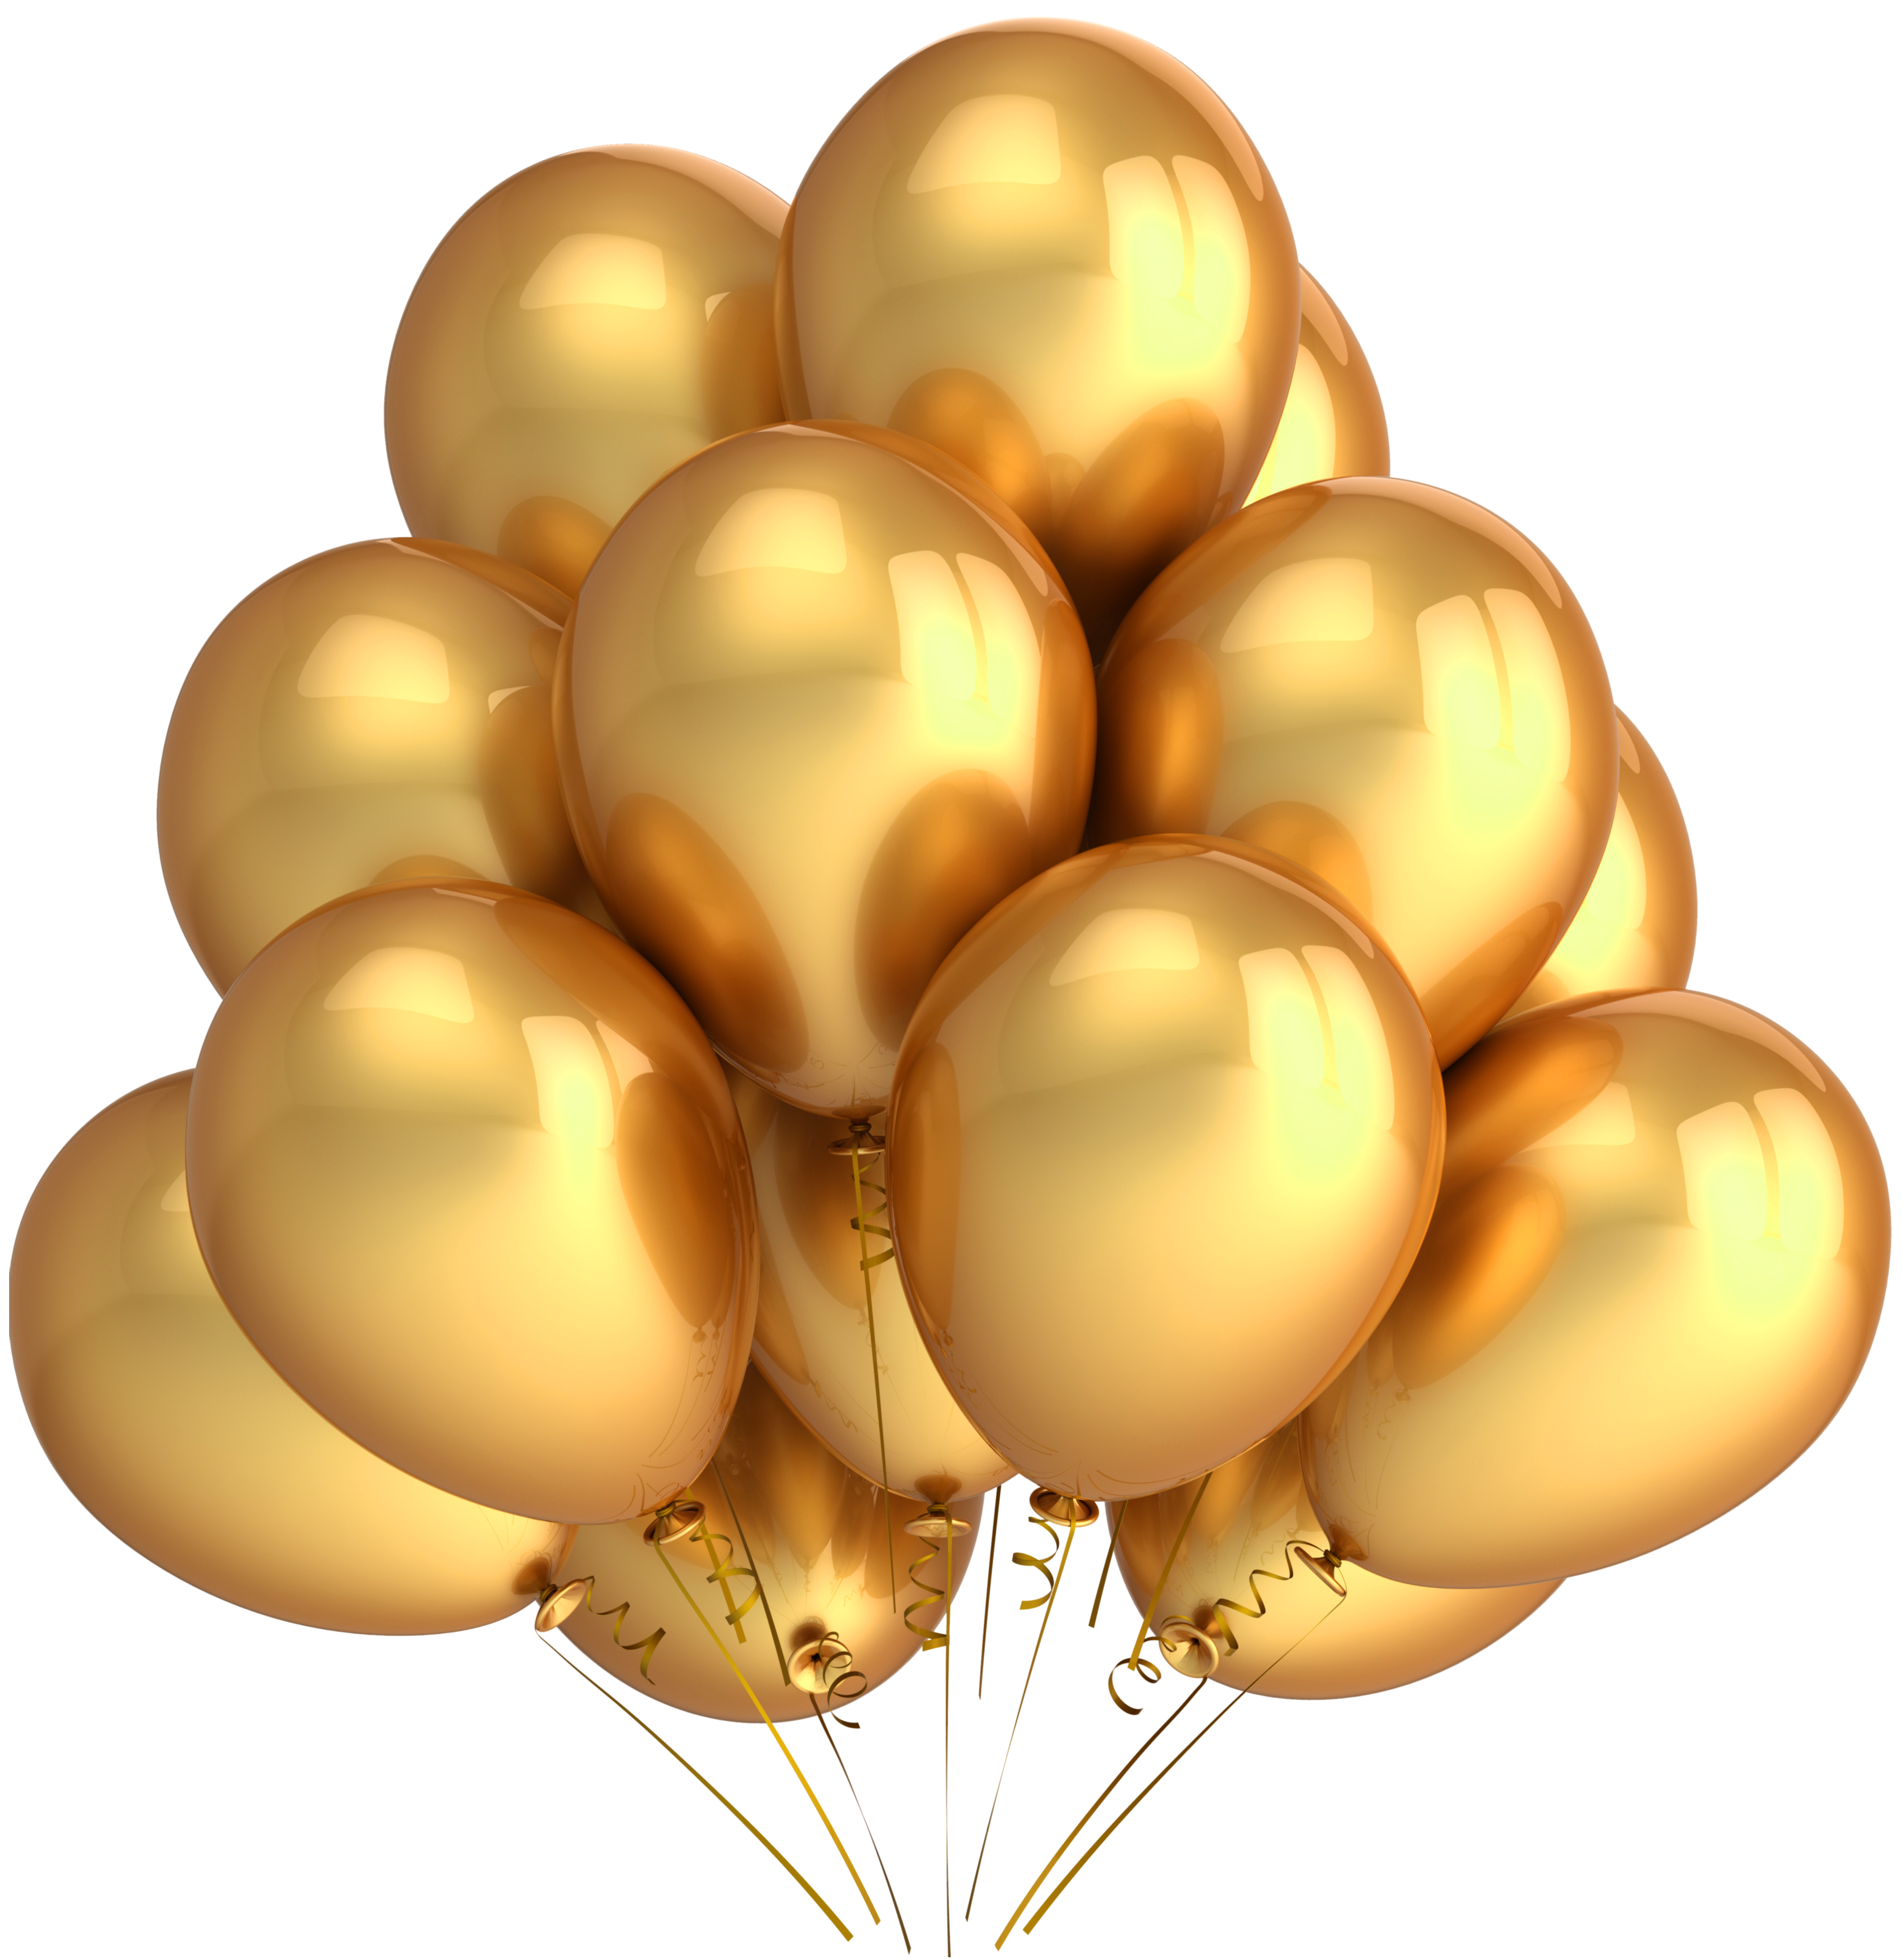 Gold Balloons Clipart & Free Gold Balloons Clipart.png.